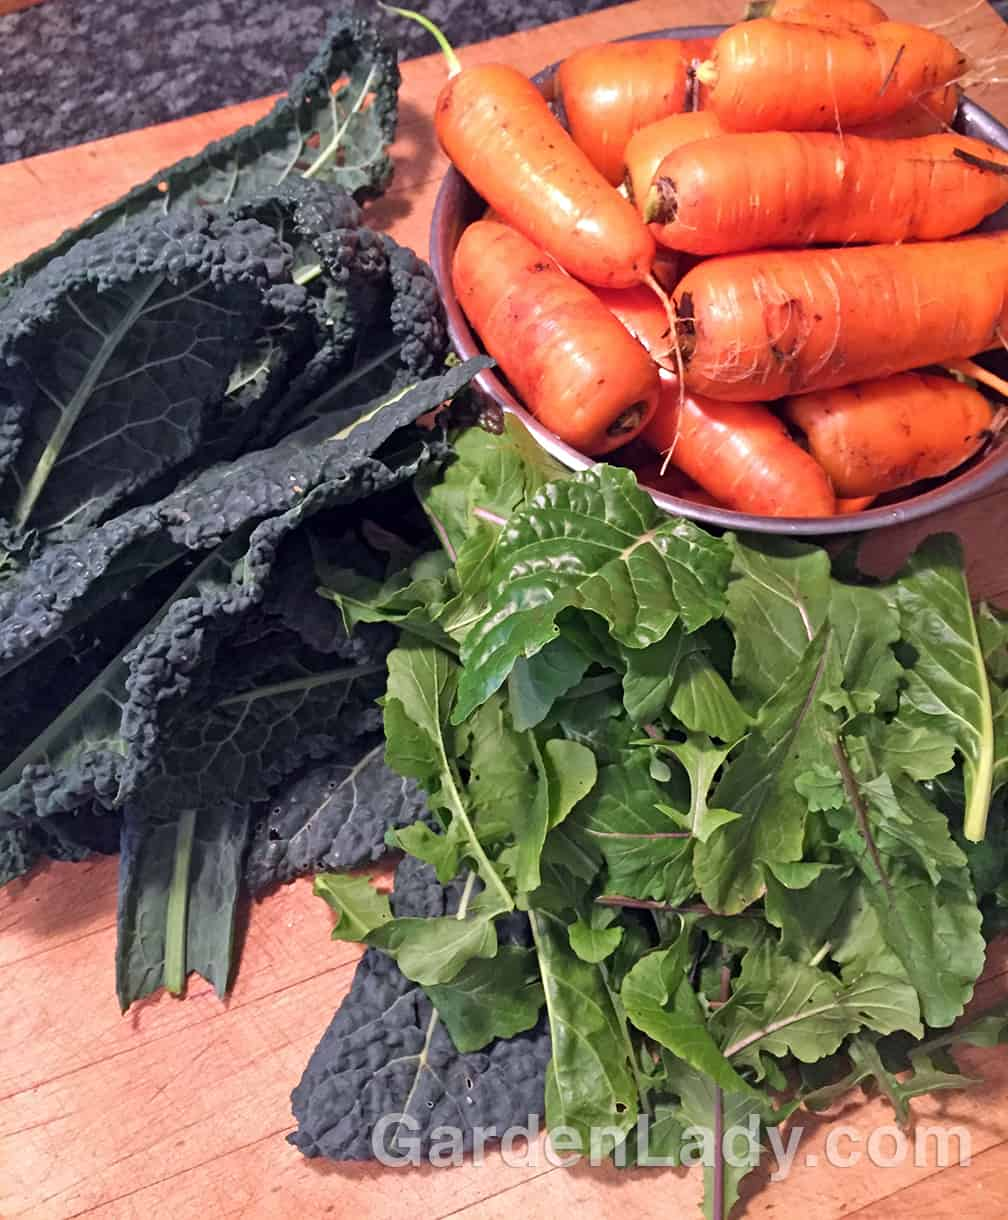 A five minute trip into the veggie garden yielded enough produce for three or more meals.